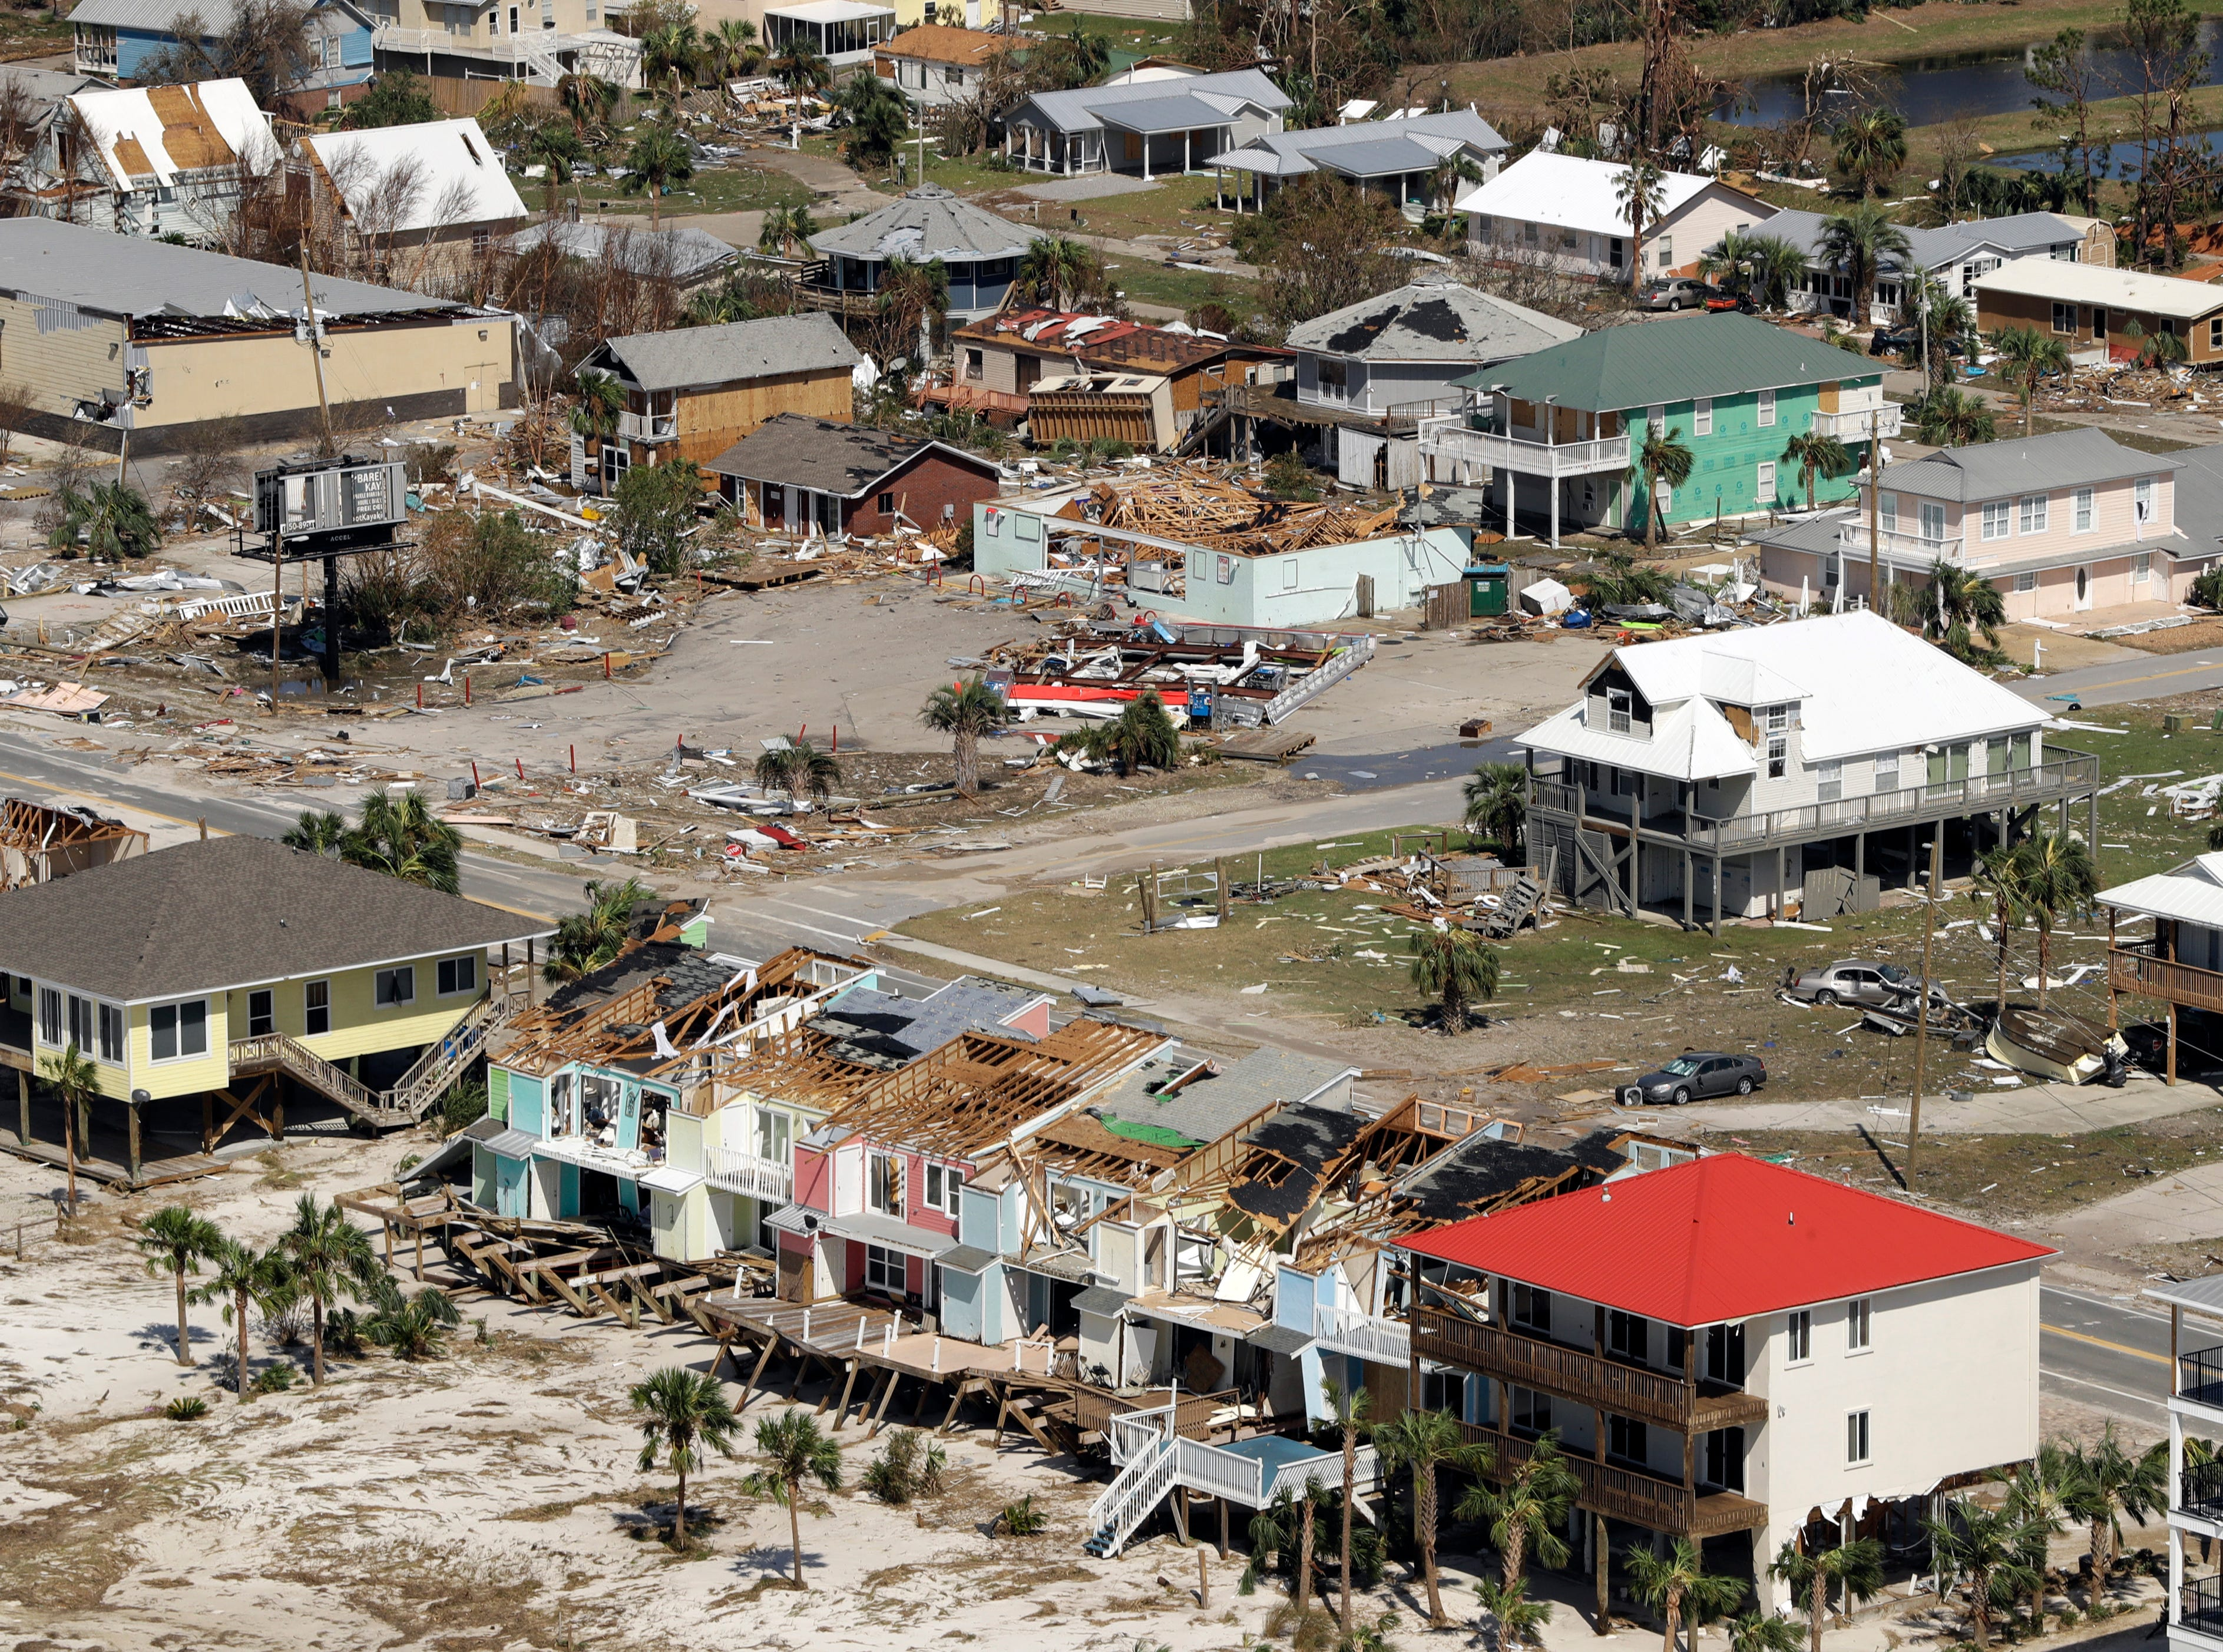 Homes destroyed by Hurricane Michael are shown in this aerial photo Thursday, Oct. 11, 2018, in Mexico Beach, Fla. The devastation inflicted by Hurricane Michael came into focus Thursday with rows upon rows of homes found smashed to pieces, and rescue crews began making their way into the stricken areas in hopes of accounting for hundreds of people who may have stayed behind.